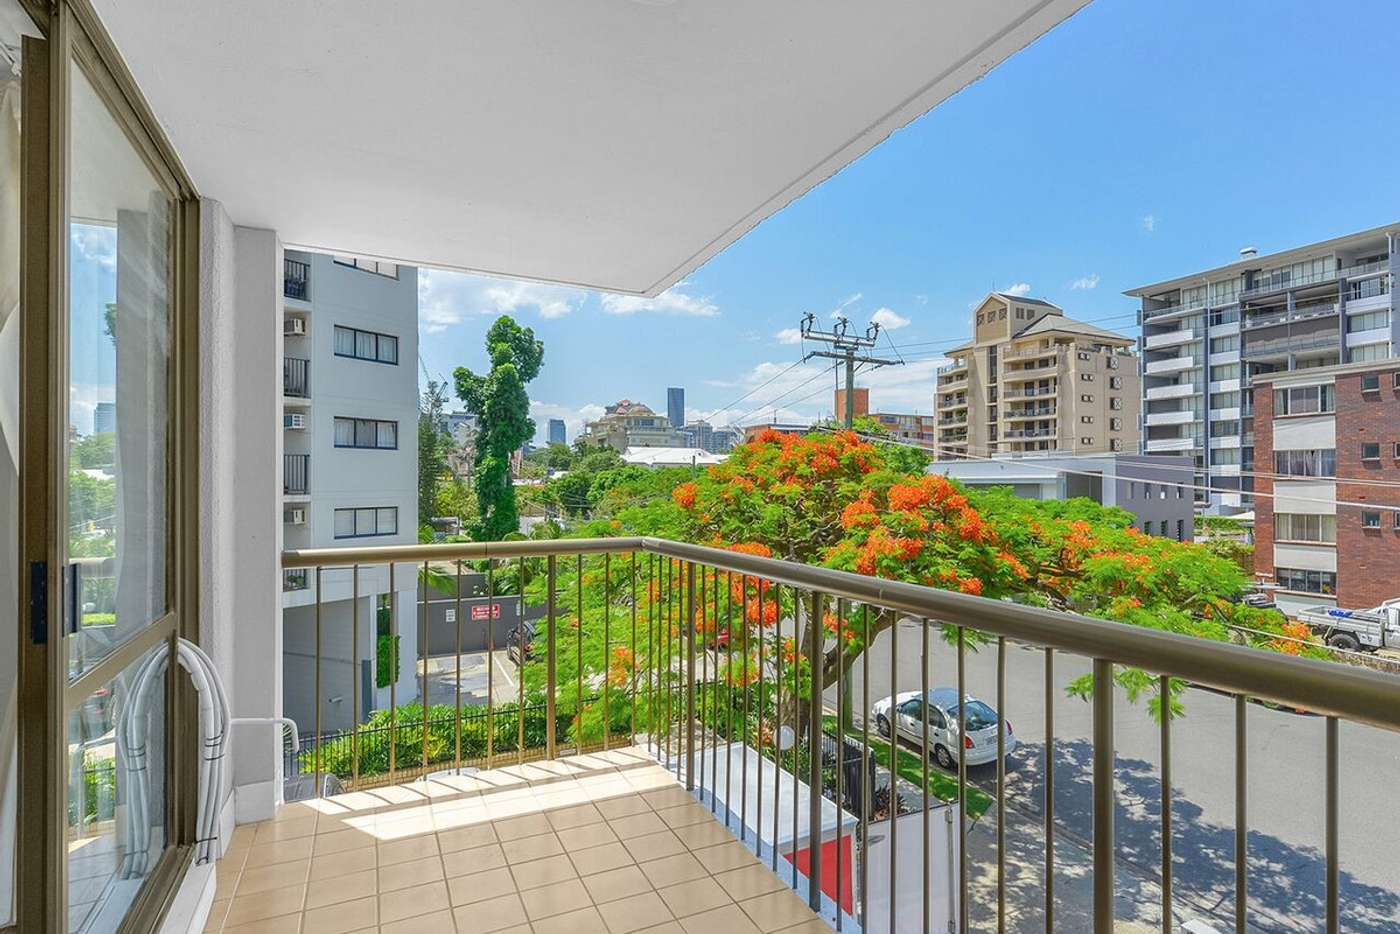 Main view of Homely apartment listing, 89 Thorn Street, Kangaroo Point QLD 4169